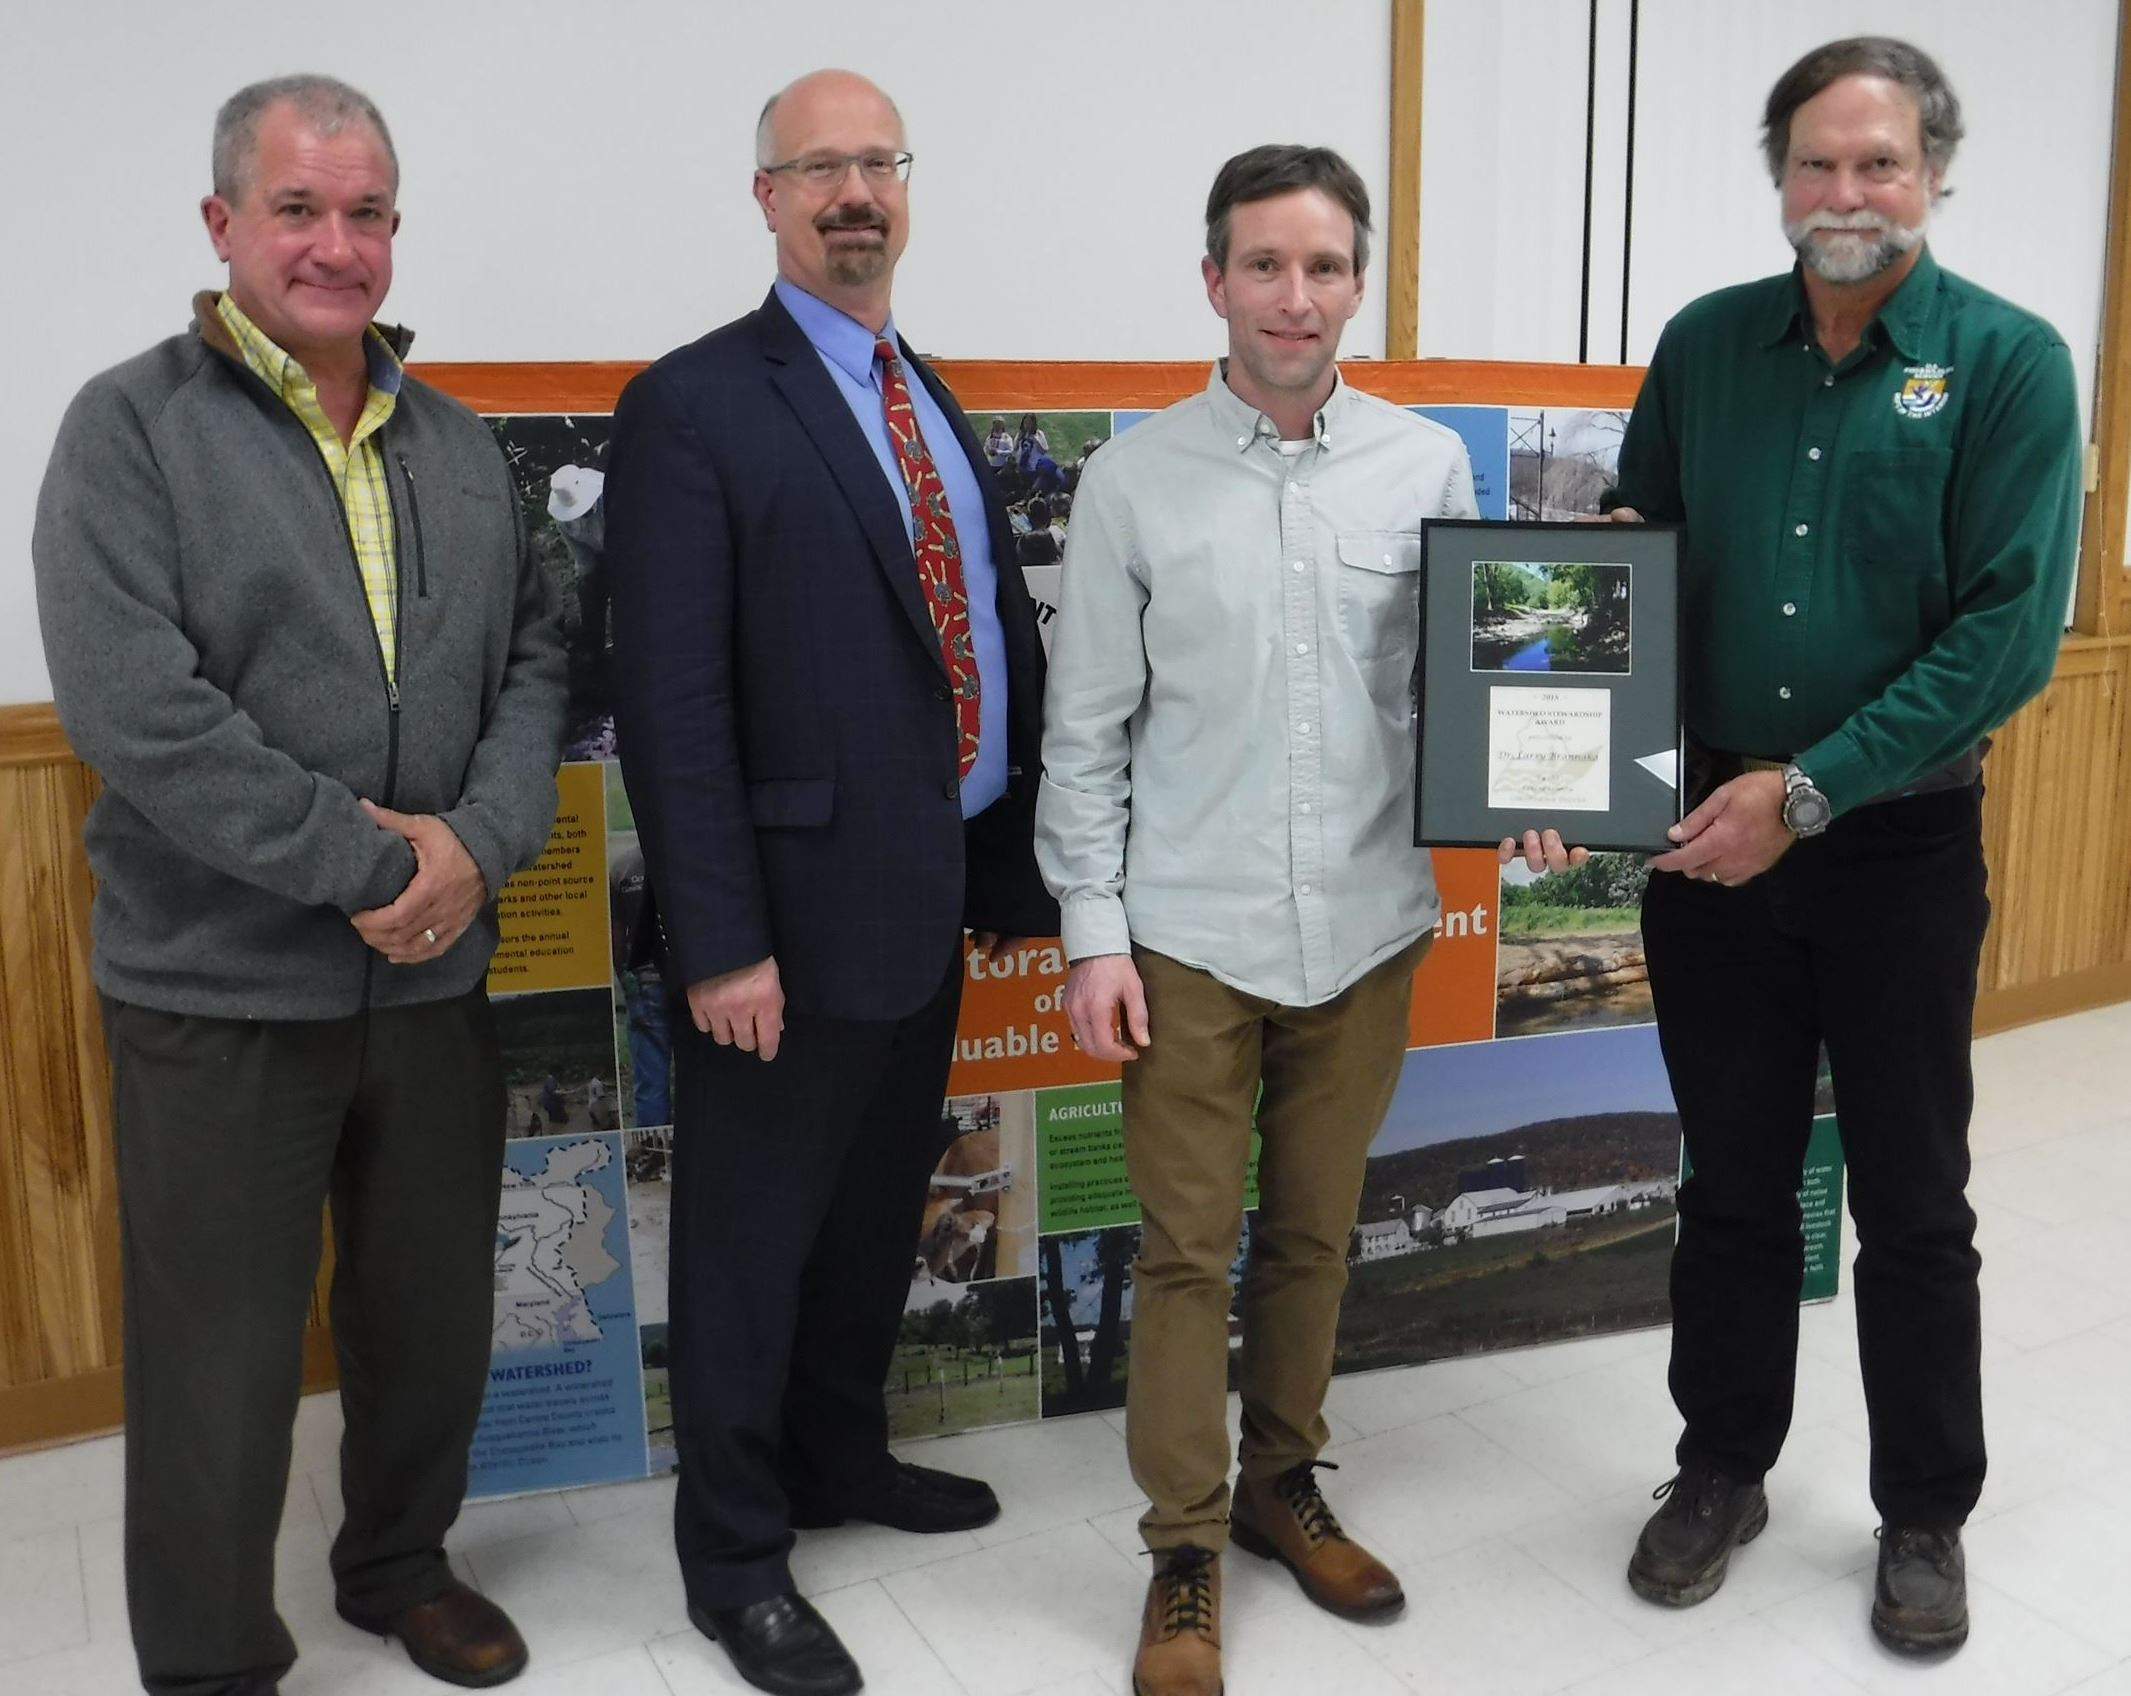 Watershed Stewardship Award 2019 winner, Larry Brannaka